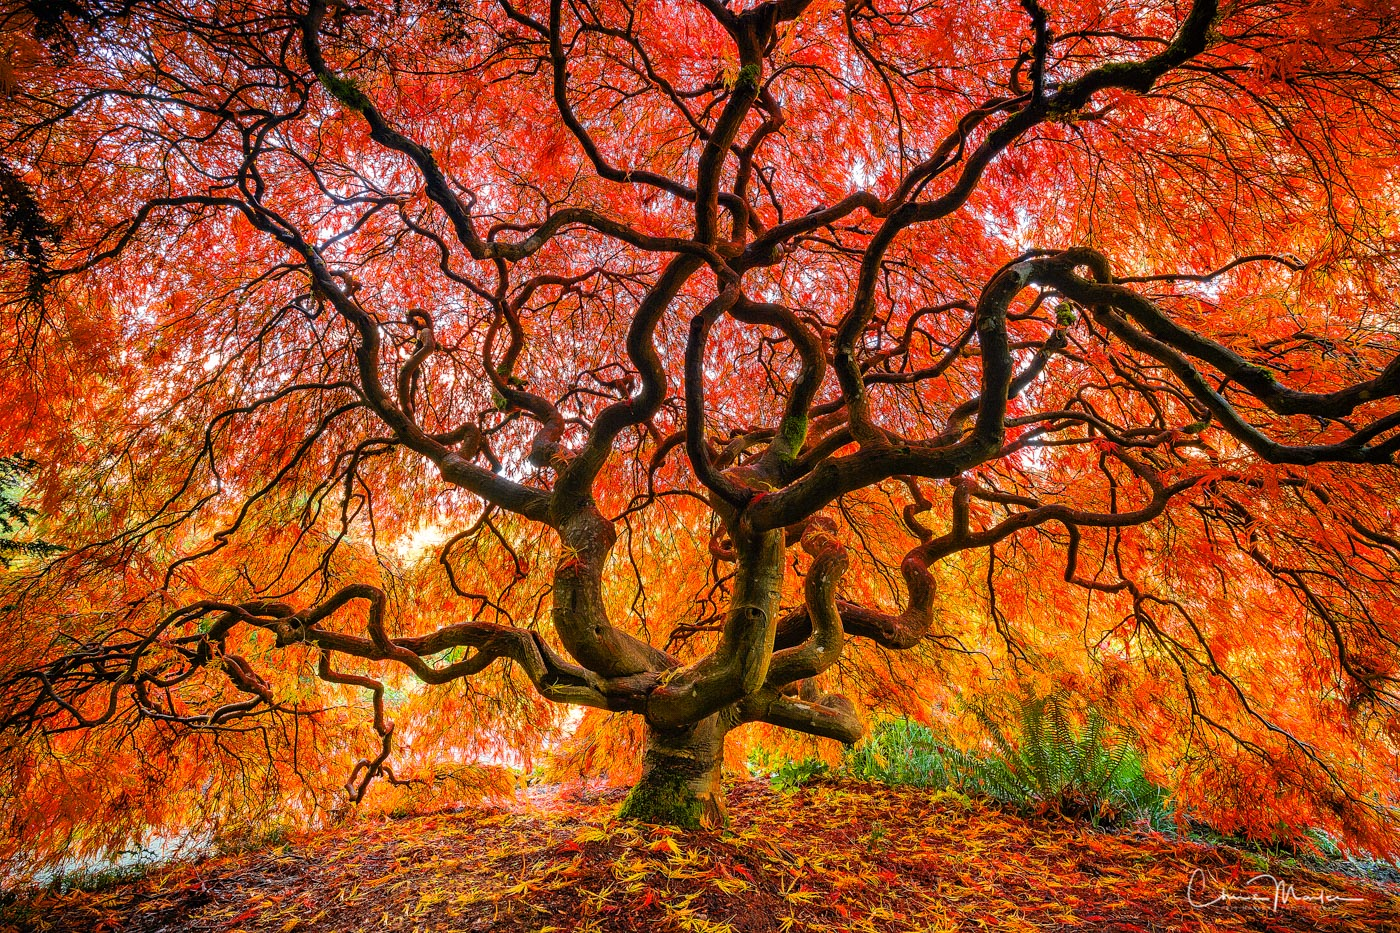 fire tree, Japanese Maple tree, Japanese maple in autumn, fall foliage, photo